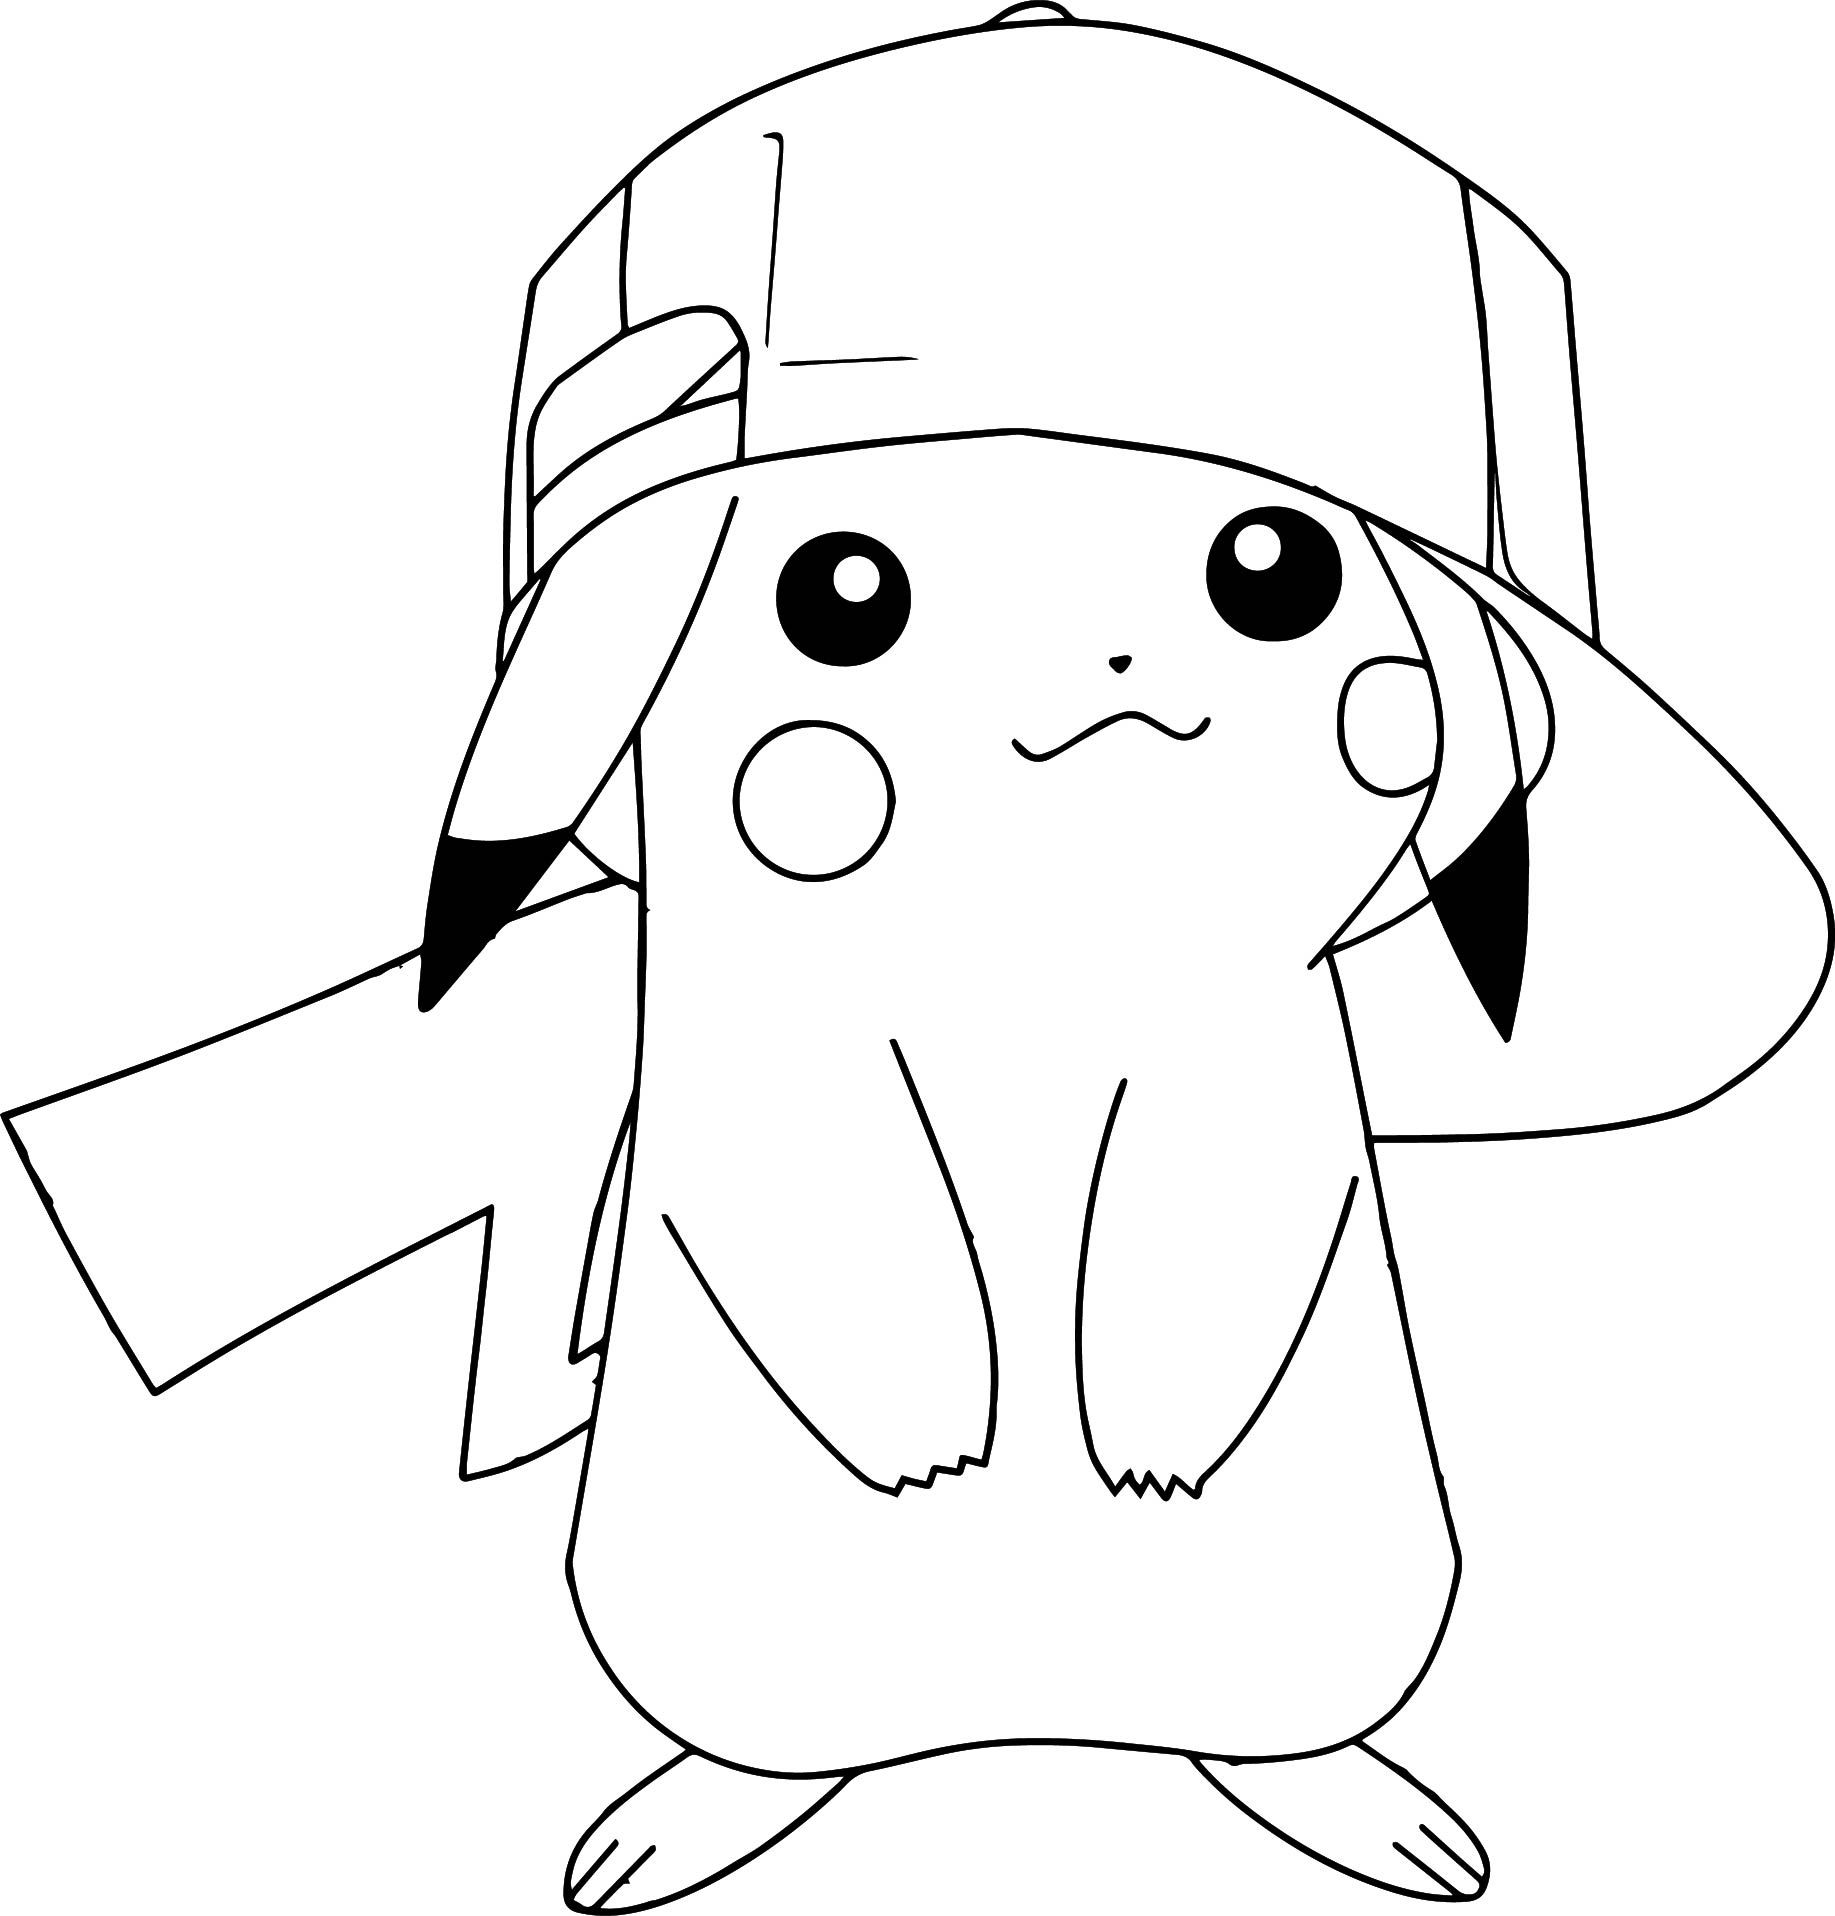 Perfect Pokemon Coloring Pages | malebog pokemon | Pinterest ...